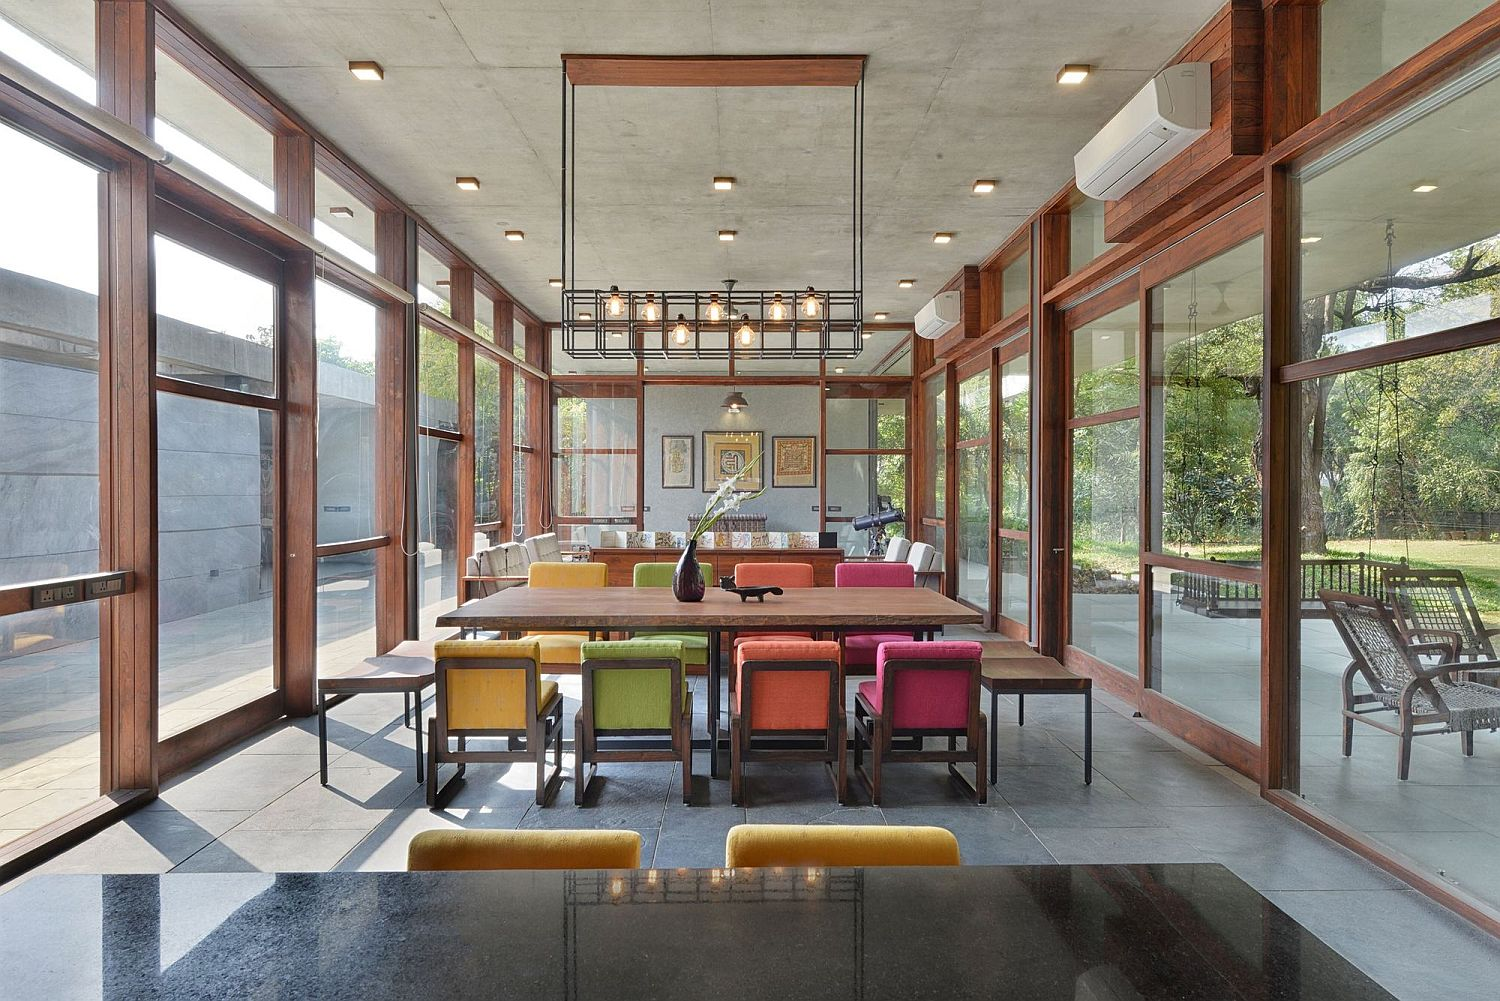 Colorful-chairs-bring-brightness-to-the-living-area